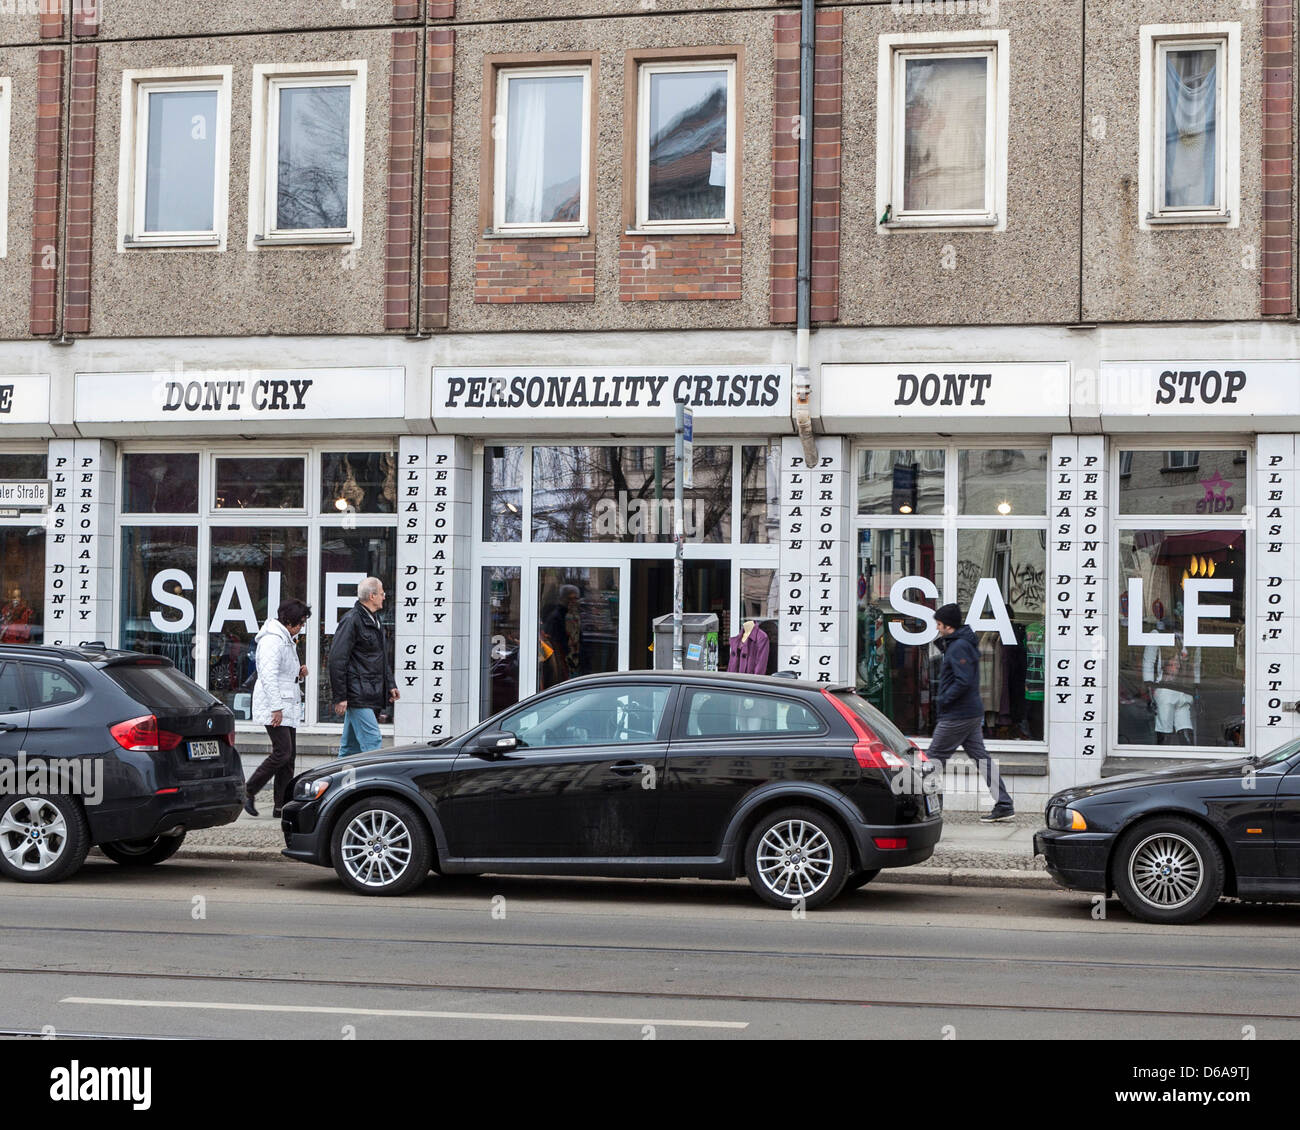 Clothing shop called 'Personality Crisis' in Rosenthalerstrasse, Mitte, Berlin - Stock Image